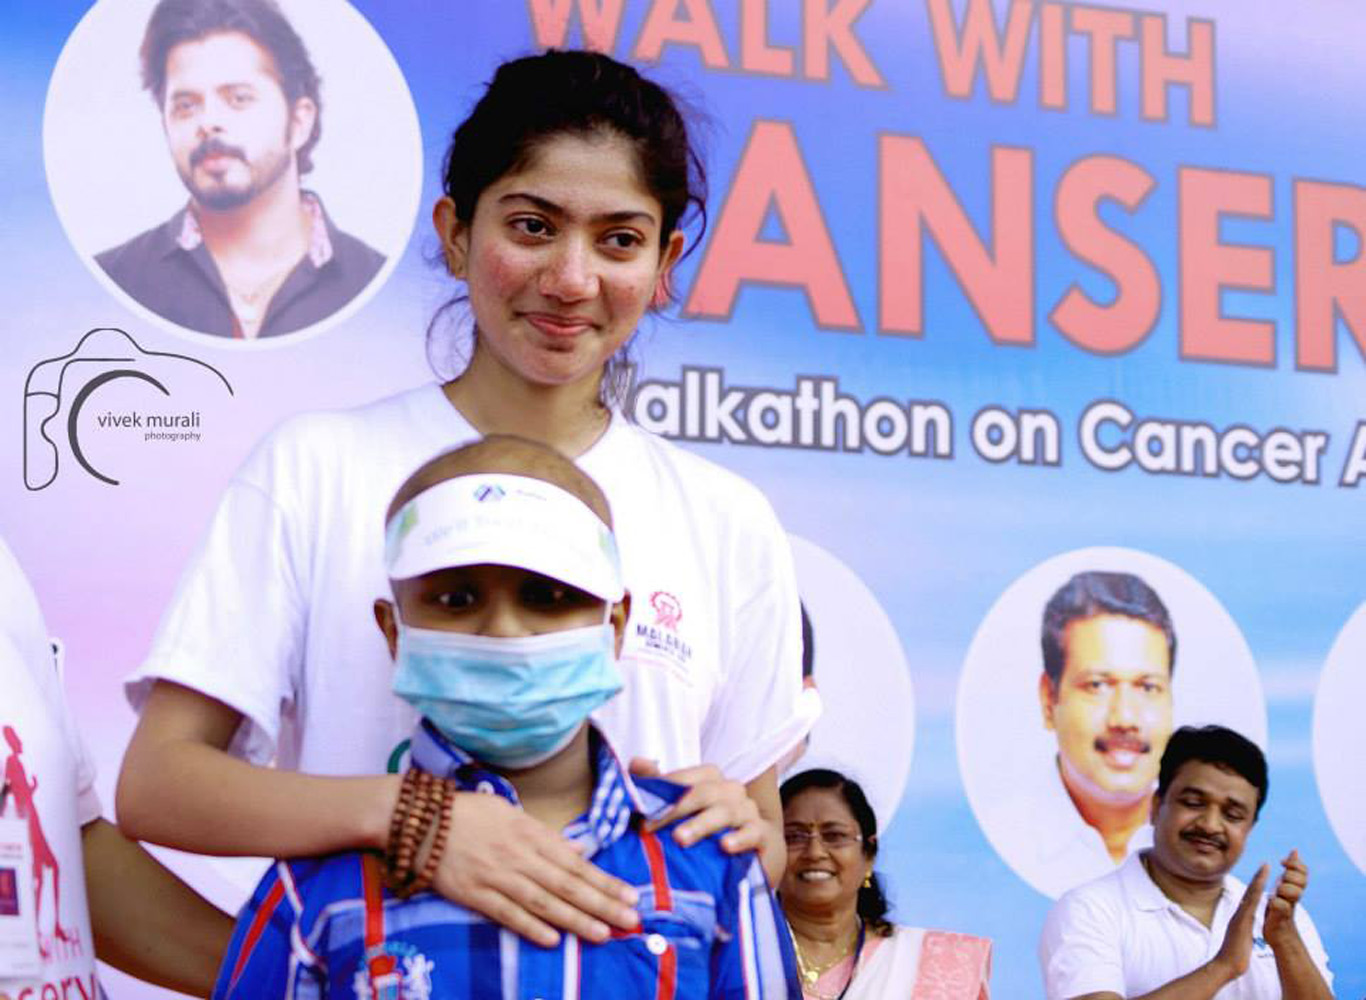 Sai Pallavi Latest Photos-Walk with cancer